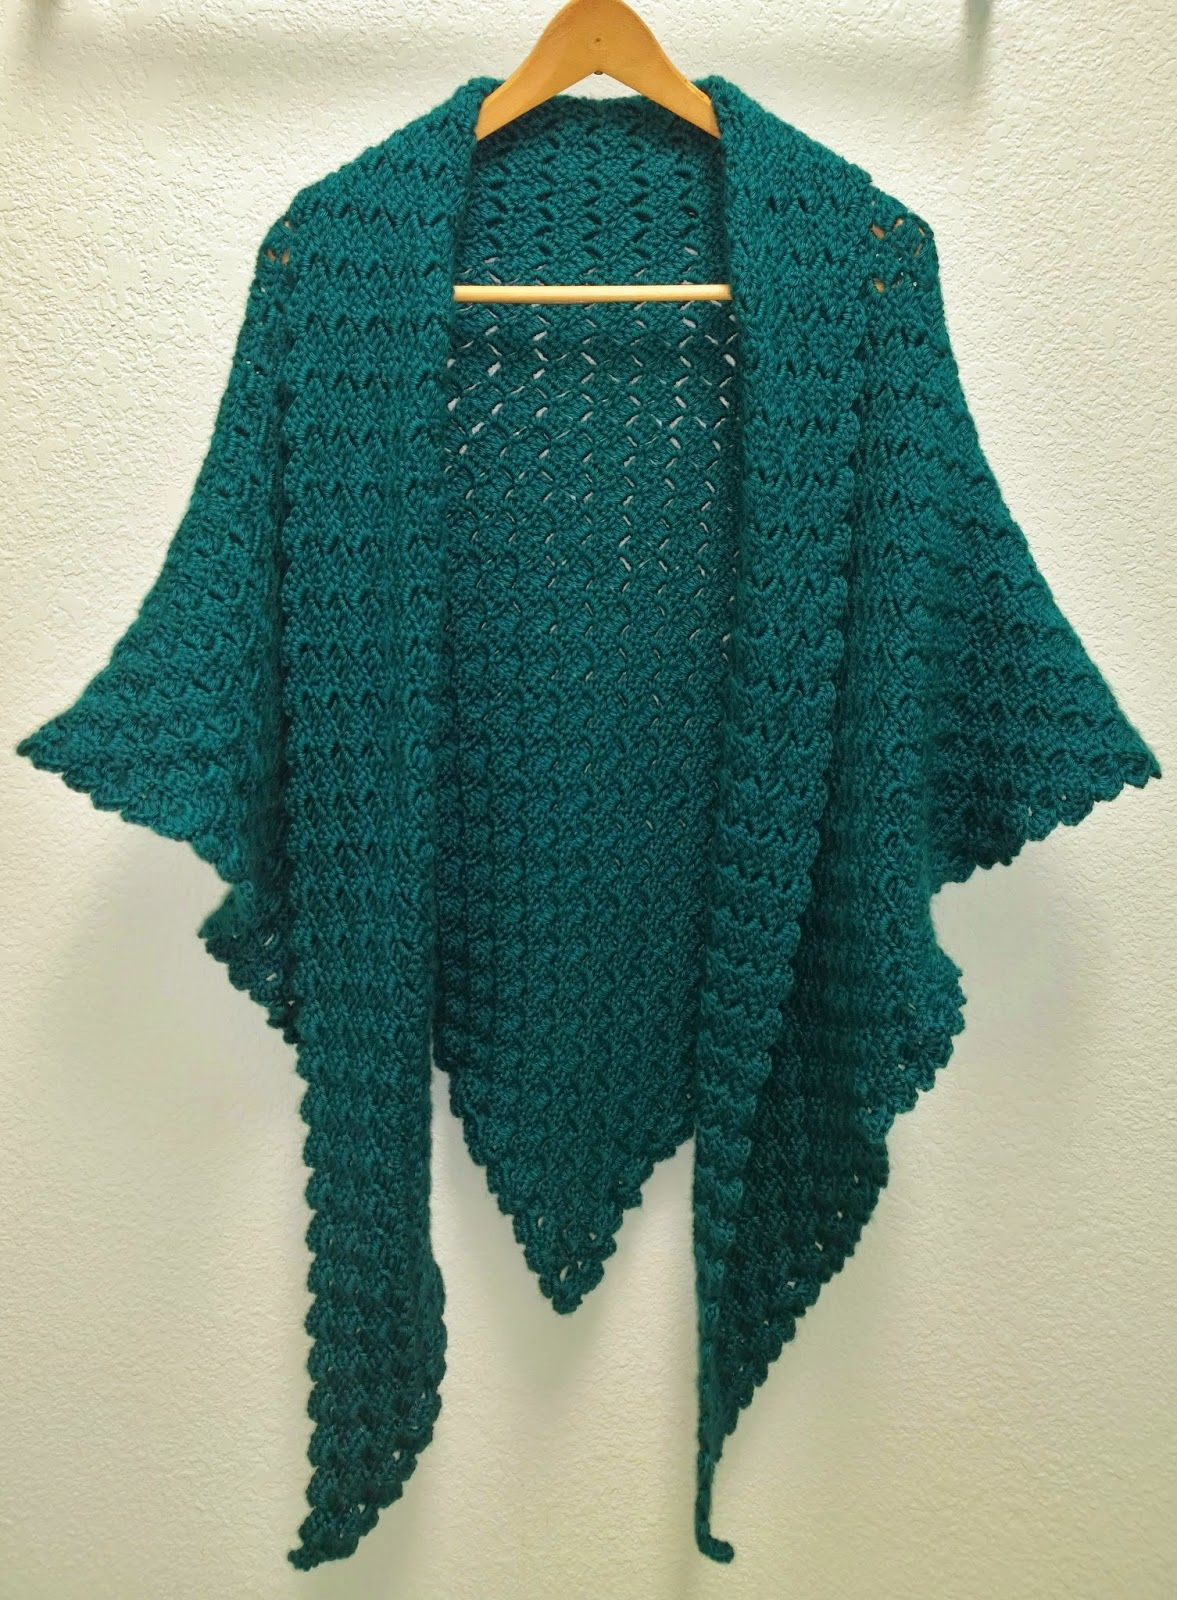 I Crocheted This Shawl For A Friend Of Mine Using The Corner To